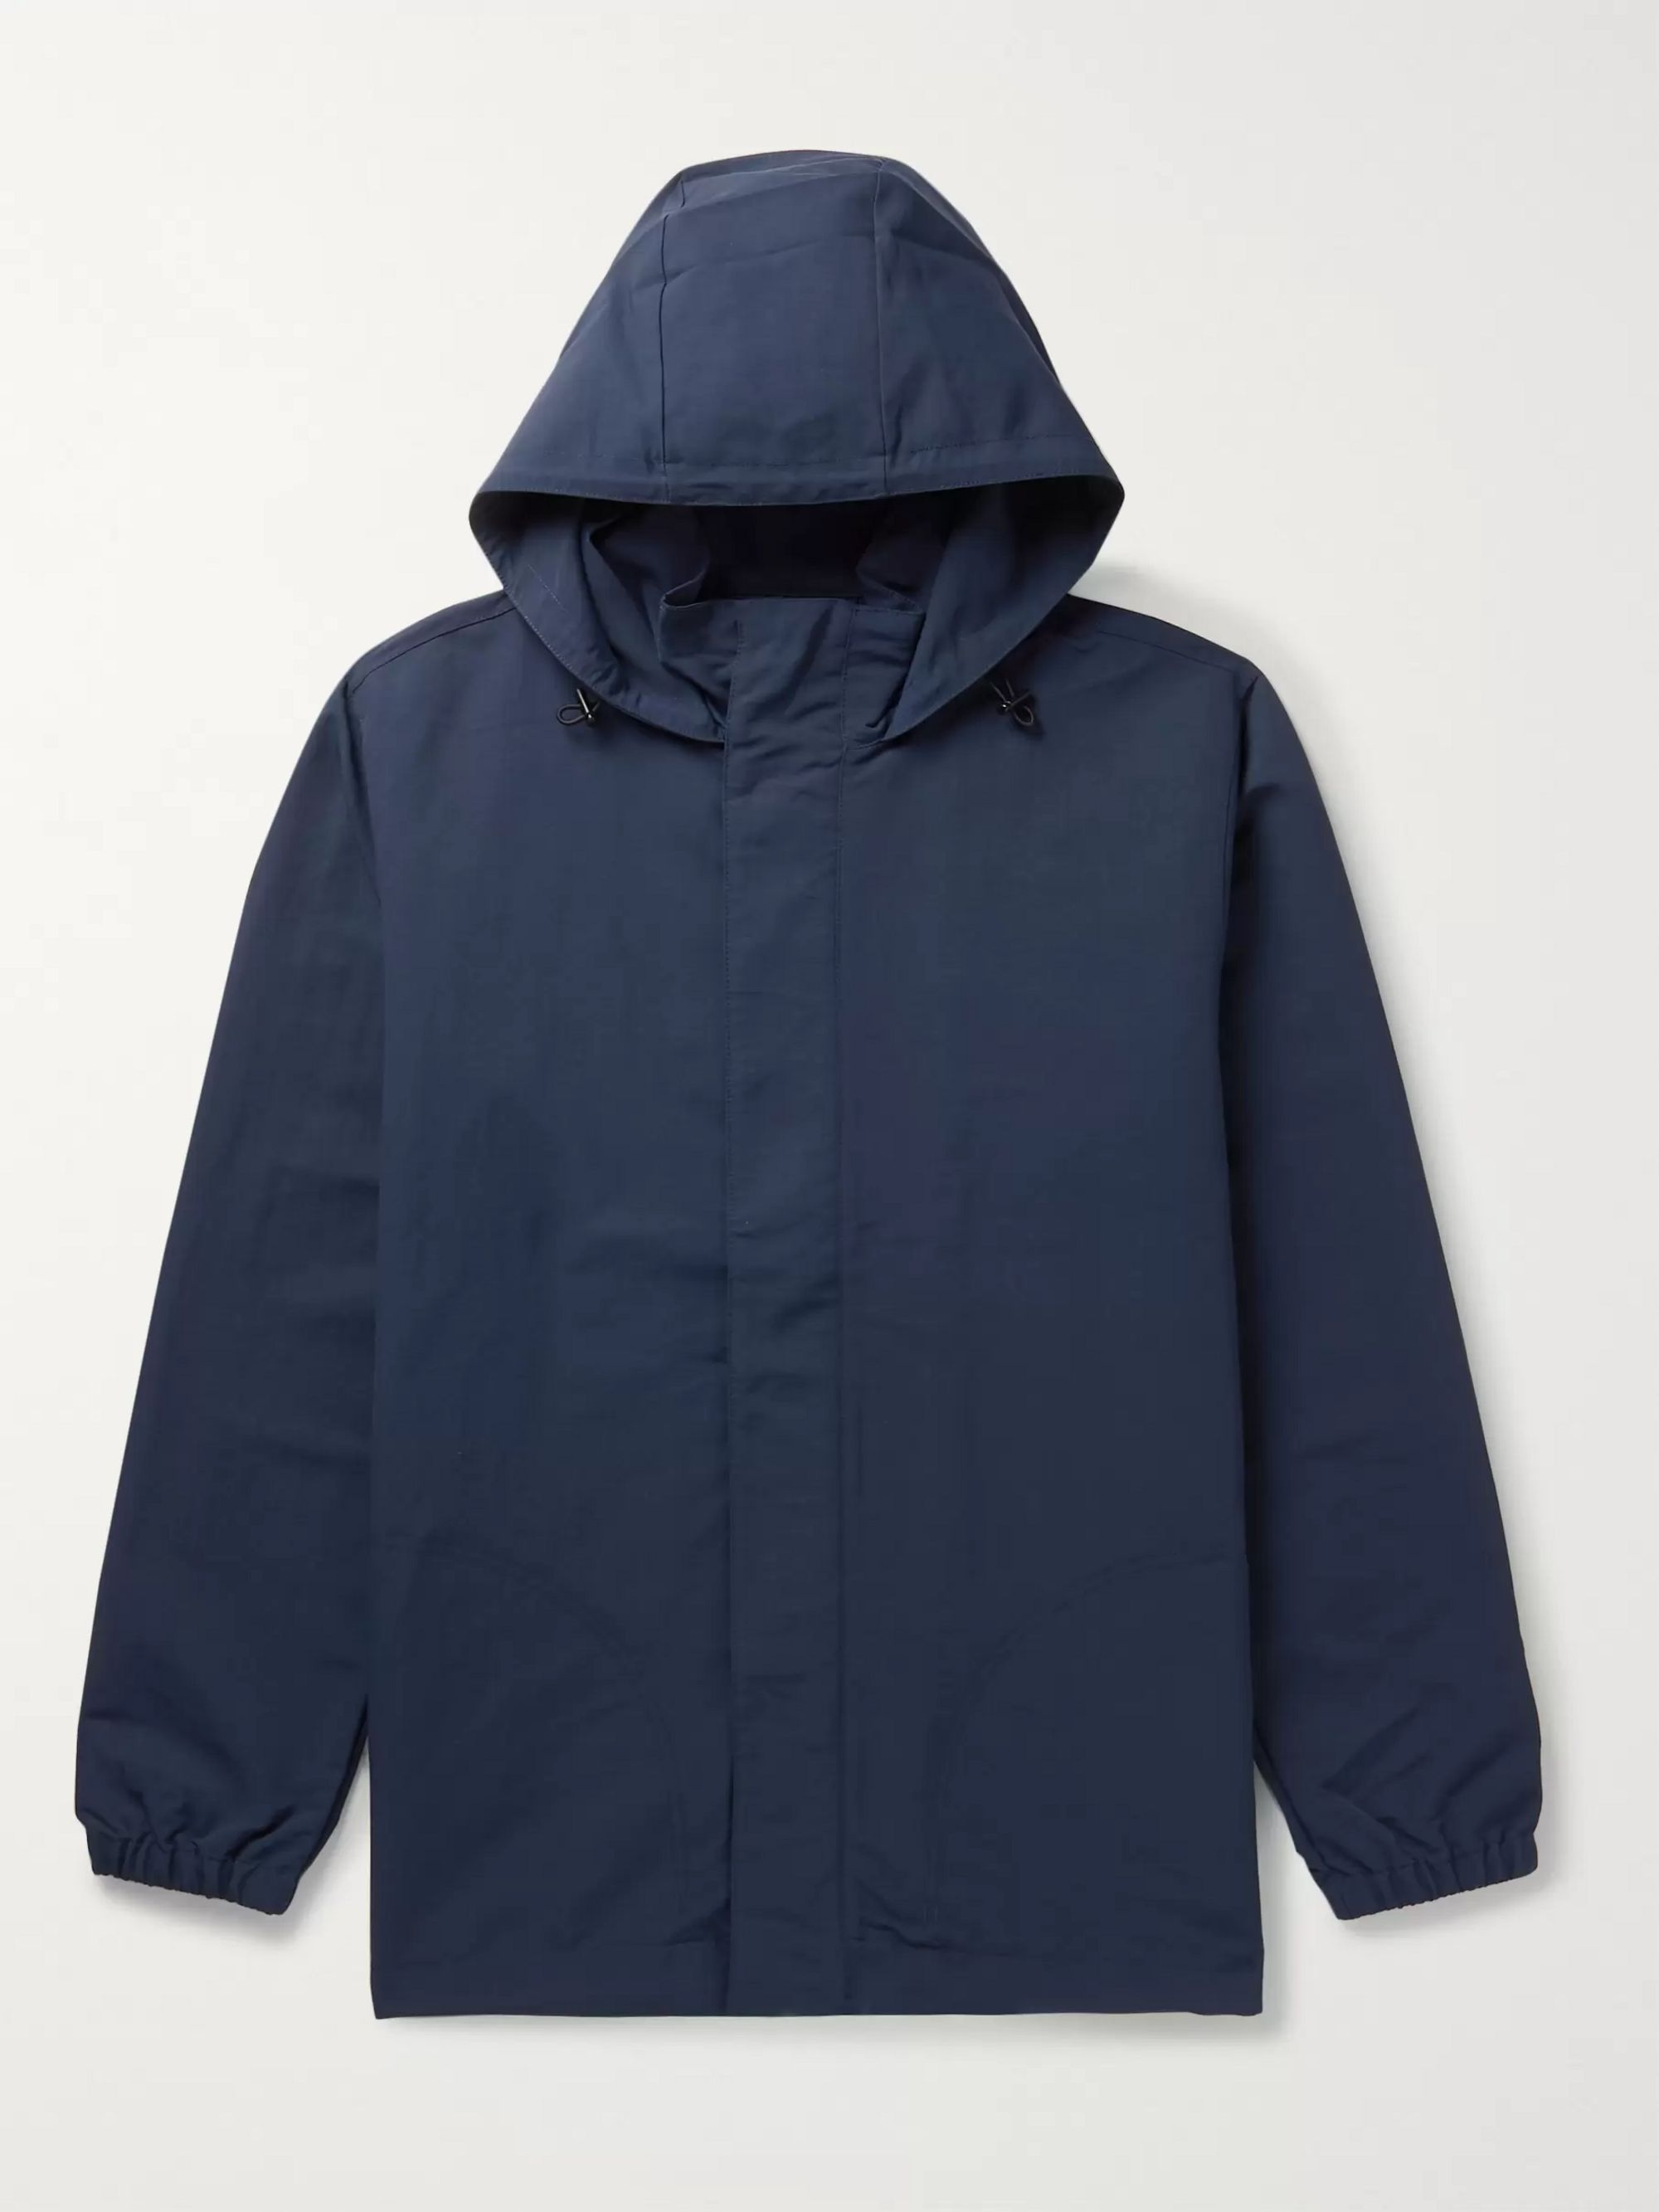 Vans + Pilgrim Surf Embroidered Nylon Hooded Jacket